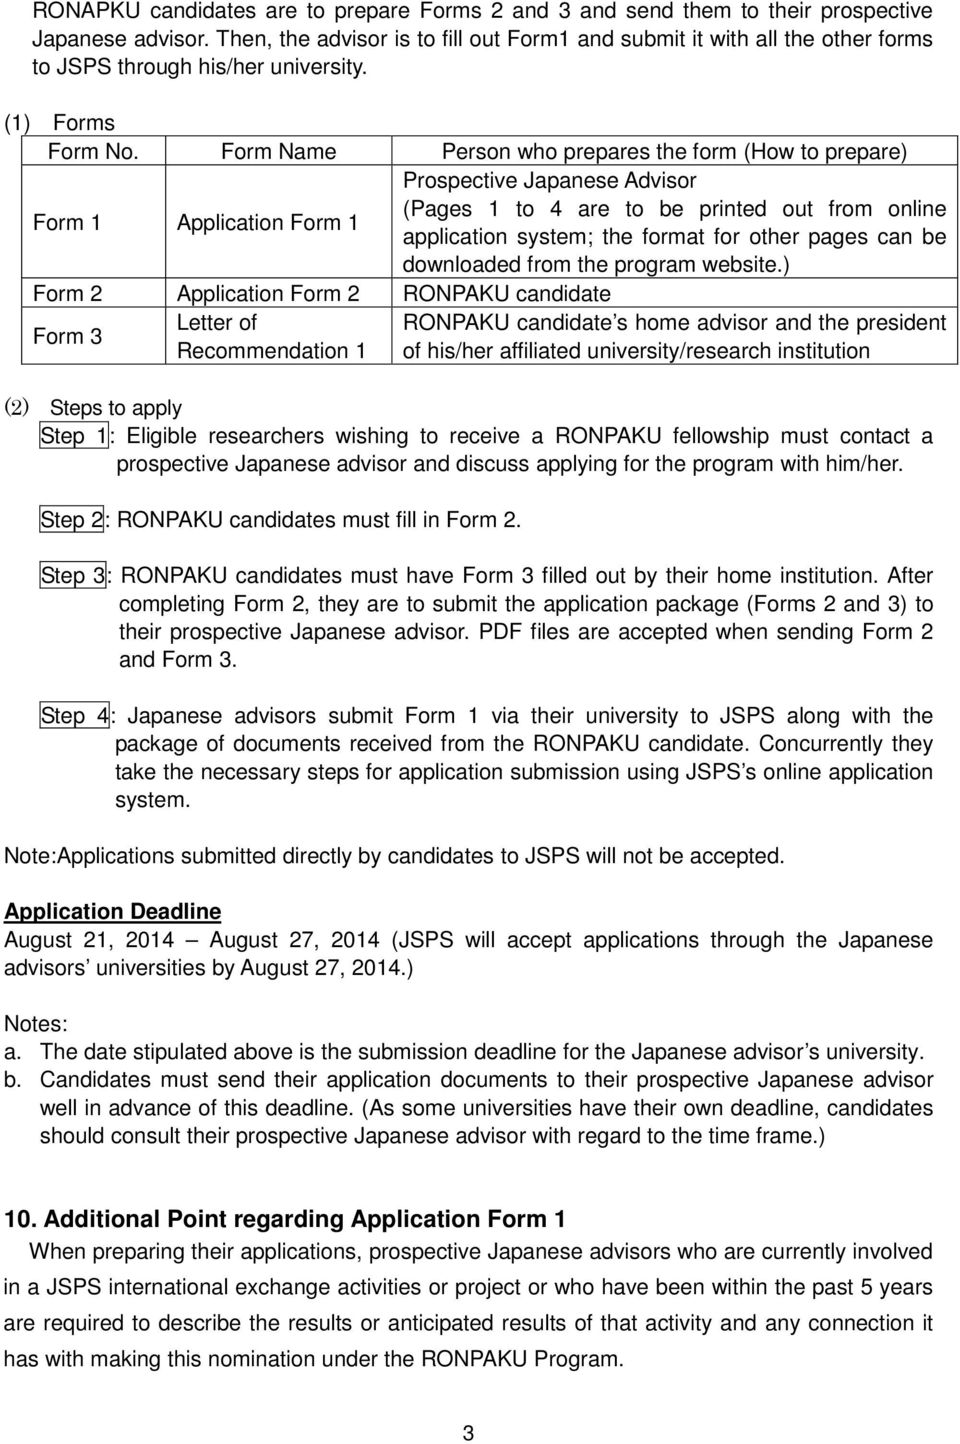 Form Name Person who prepares the form (How to prepare) Form 1 Application Form 1 Prospective Japanese Advisor (Pages 1 to 4 are to be printed out from online application system; the format for other